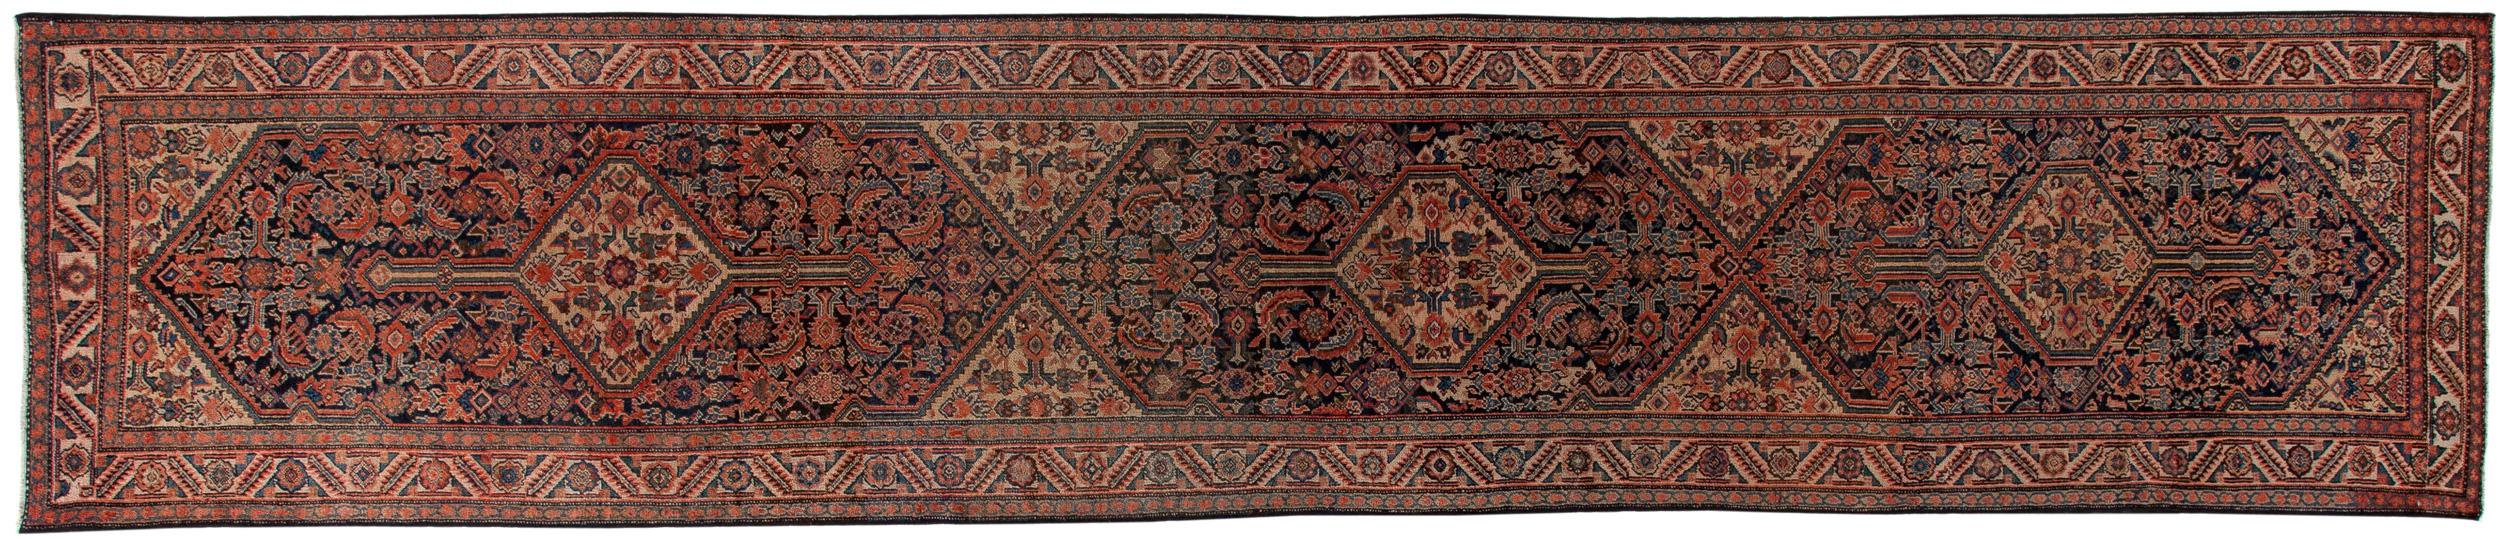 Antique Old Persian Style Runner